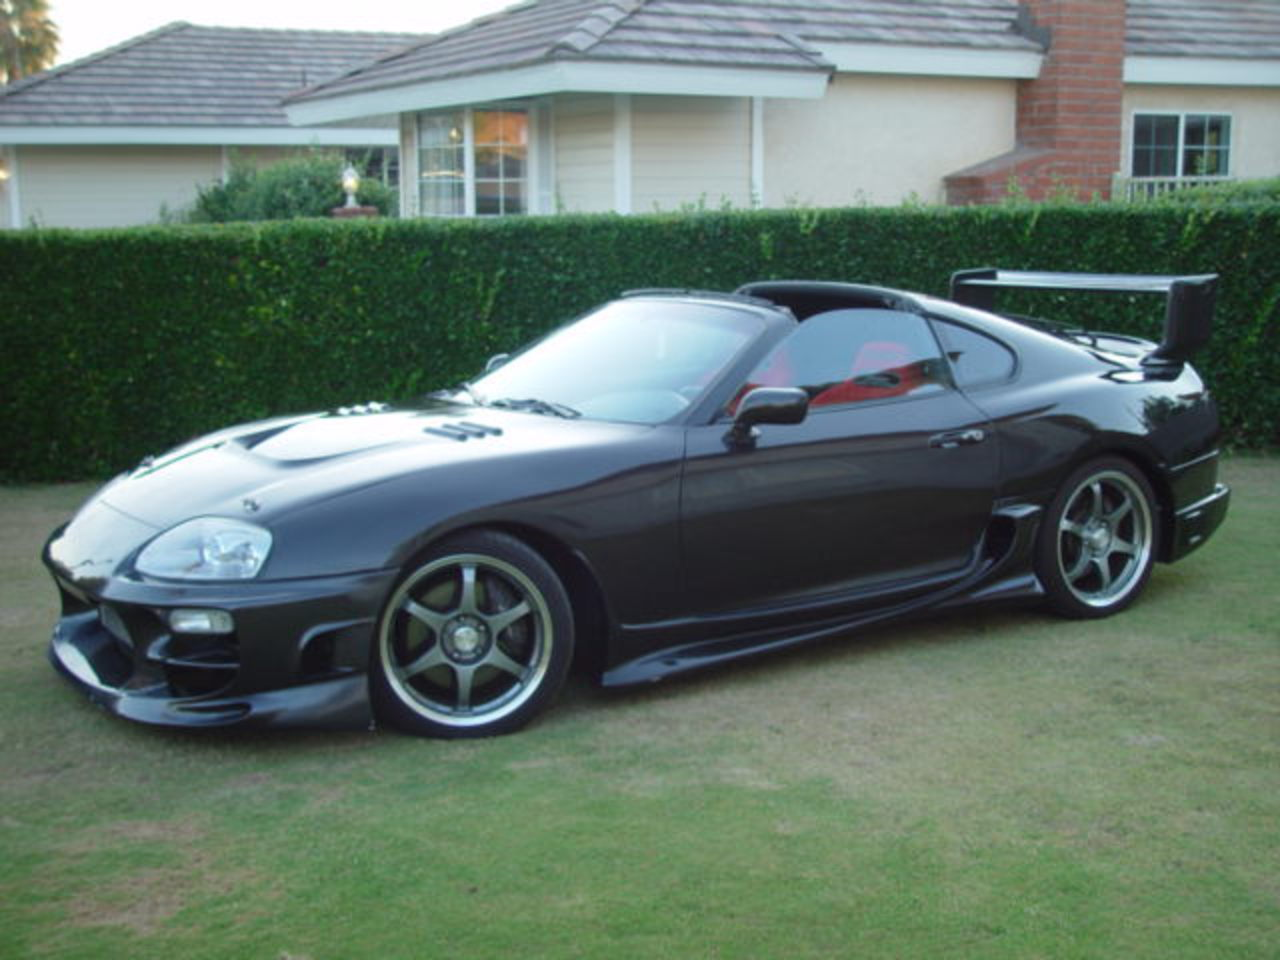 1995 Toyota Supra picture · 175 pictures · 14 videos · 20 reviews